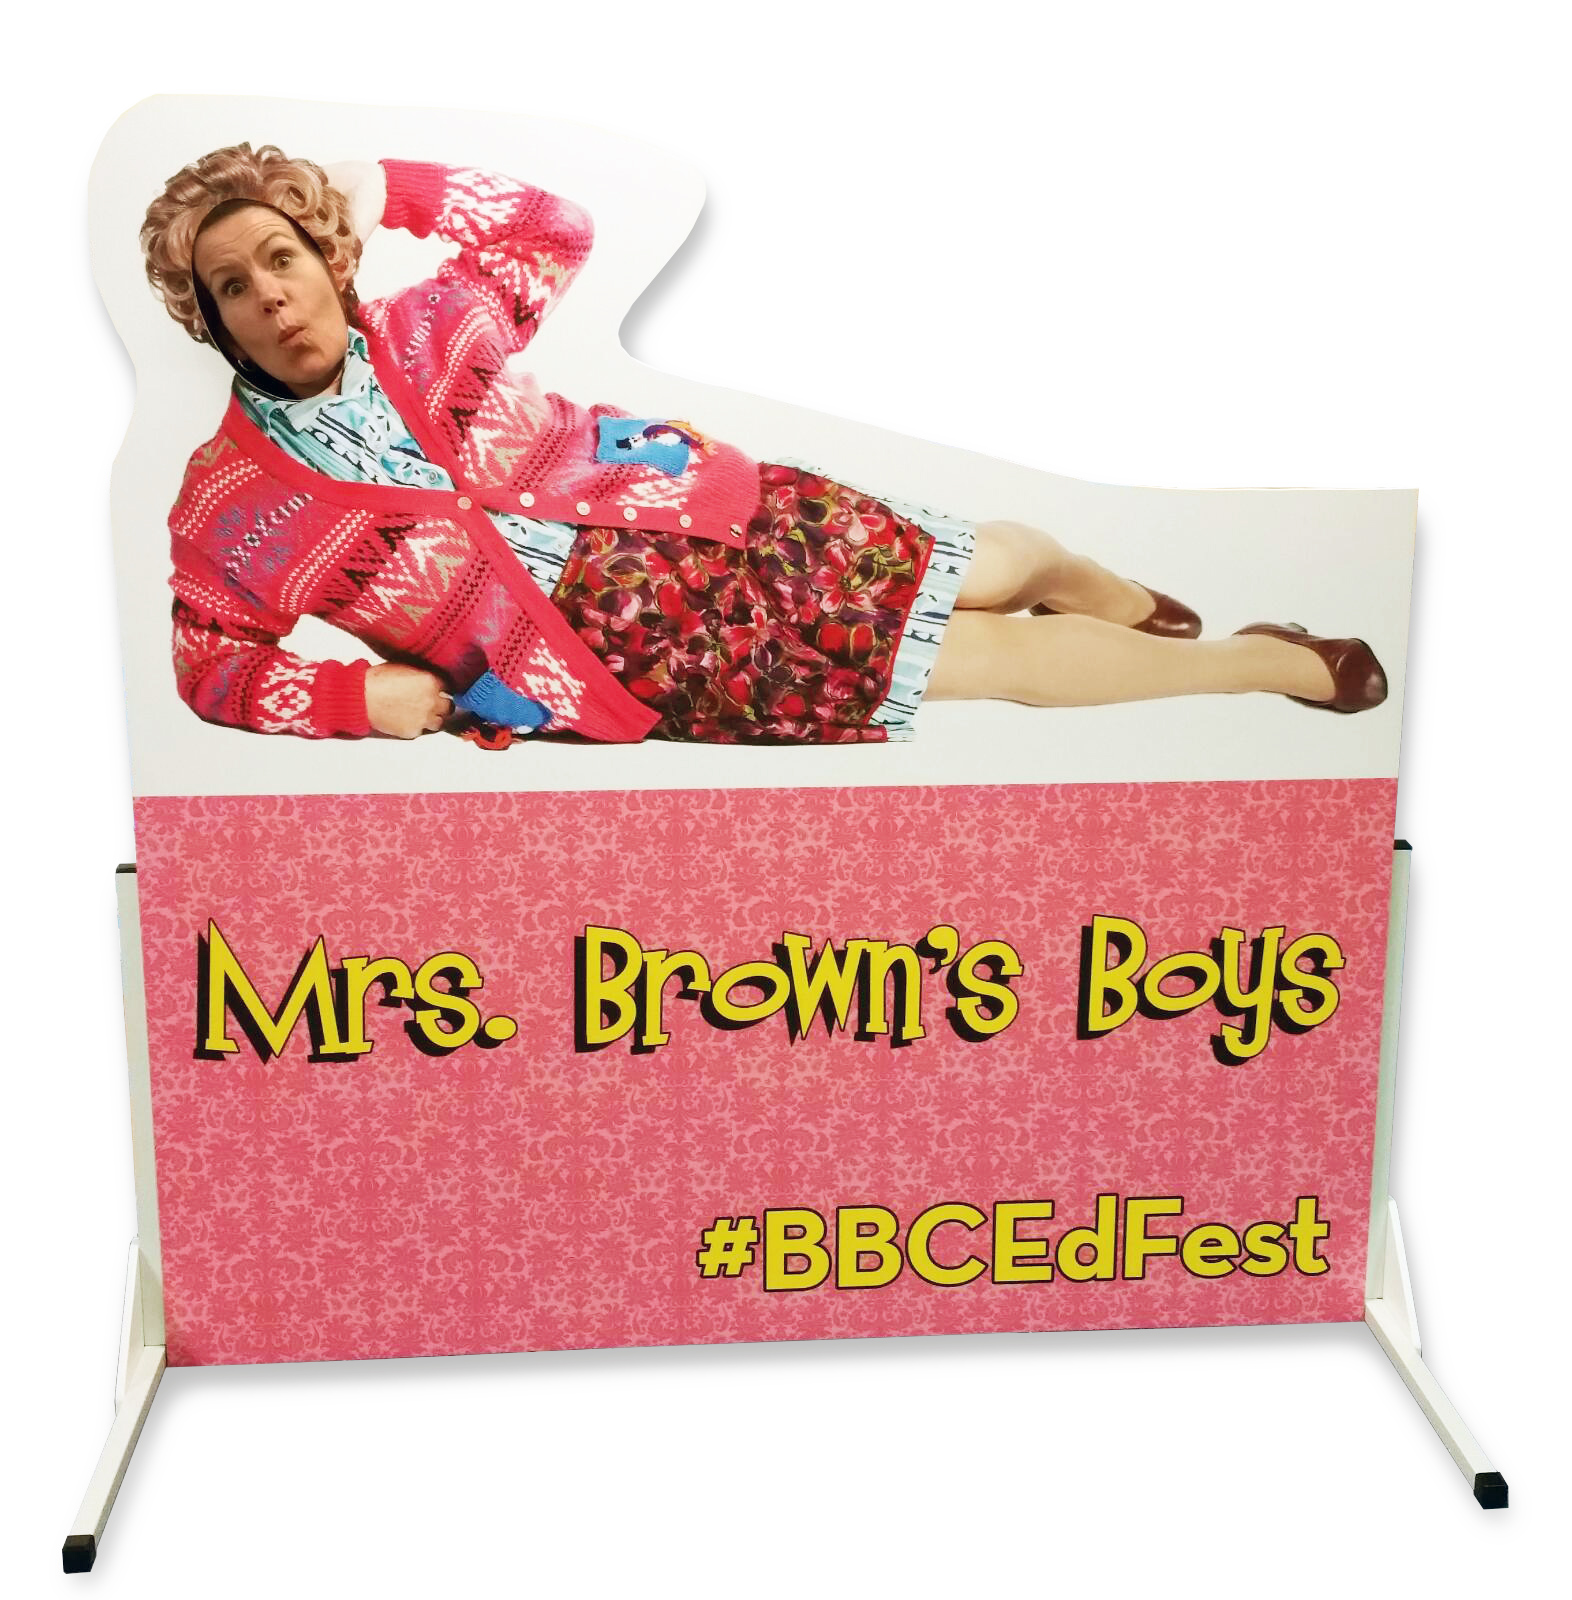 Mrs Brown's Boys board for the BBC